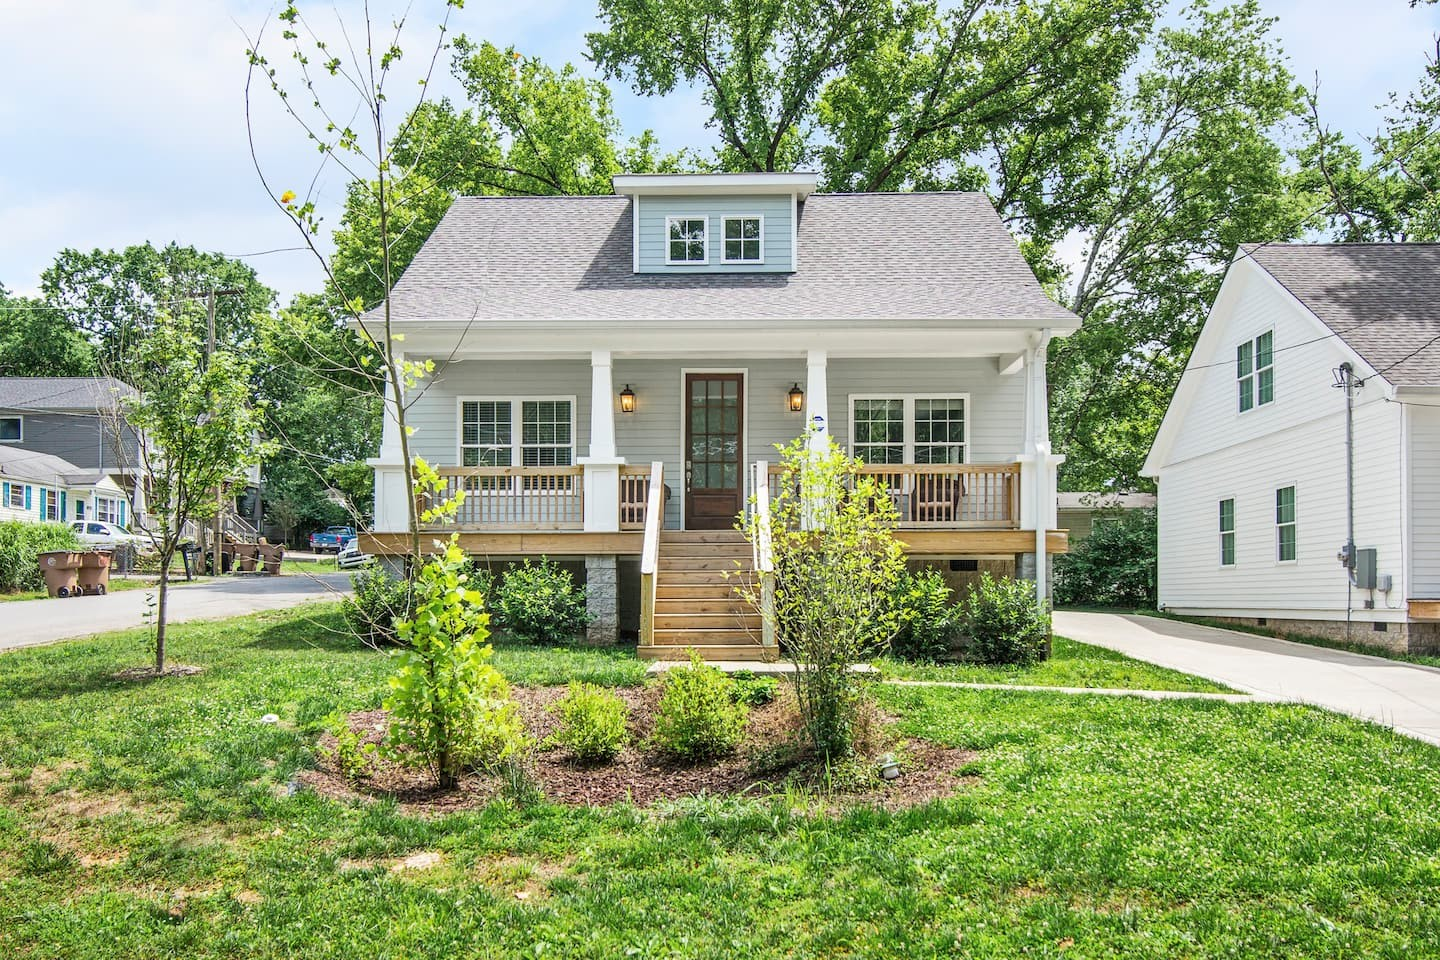 Beautiful, like-new East Nashville Cottage! Features open concept living w/ pristine hardwoods throughout, designer finishes,  Entertainer's Kitchen w/ Carrera marble island & countertops, stainless steel appliances, & Master on the main w/ a walk-in closet w/ built-ins and master bath. Covered front porch and private deck.  Minutes to downtown and walkable to local favorites like Crema Coffee Shop and East Nashville Beer Works Brewery!